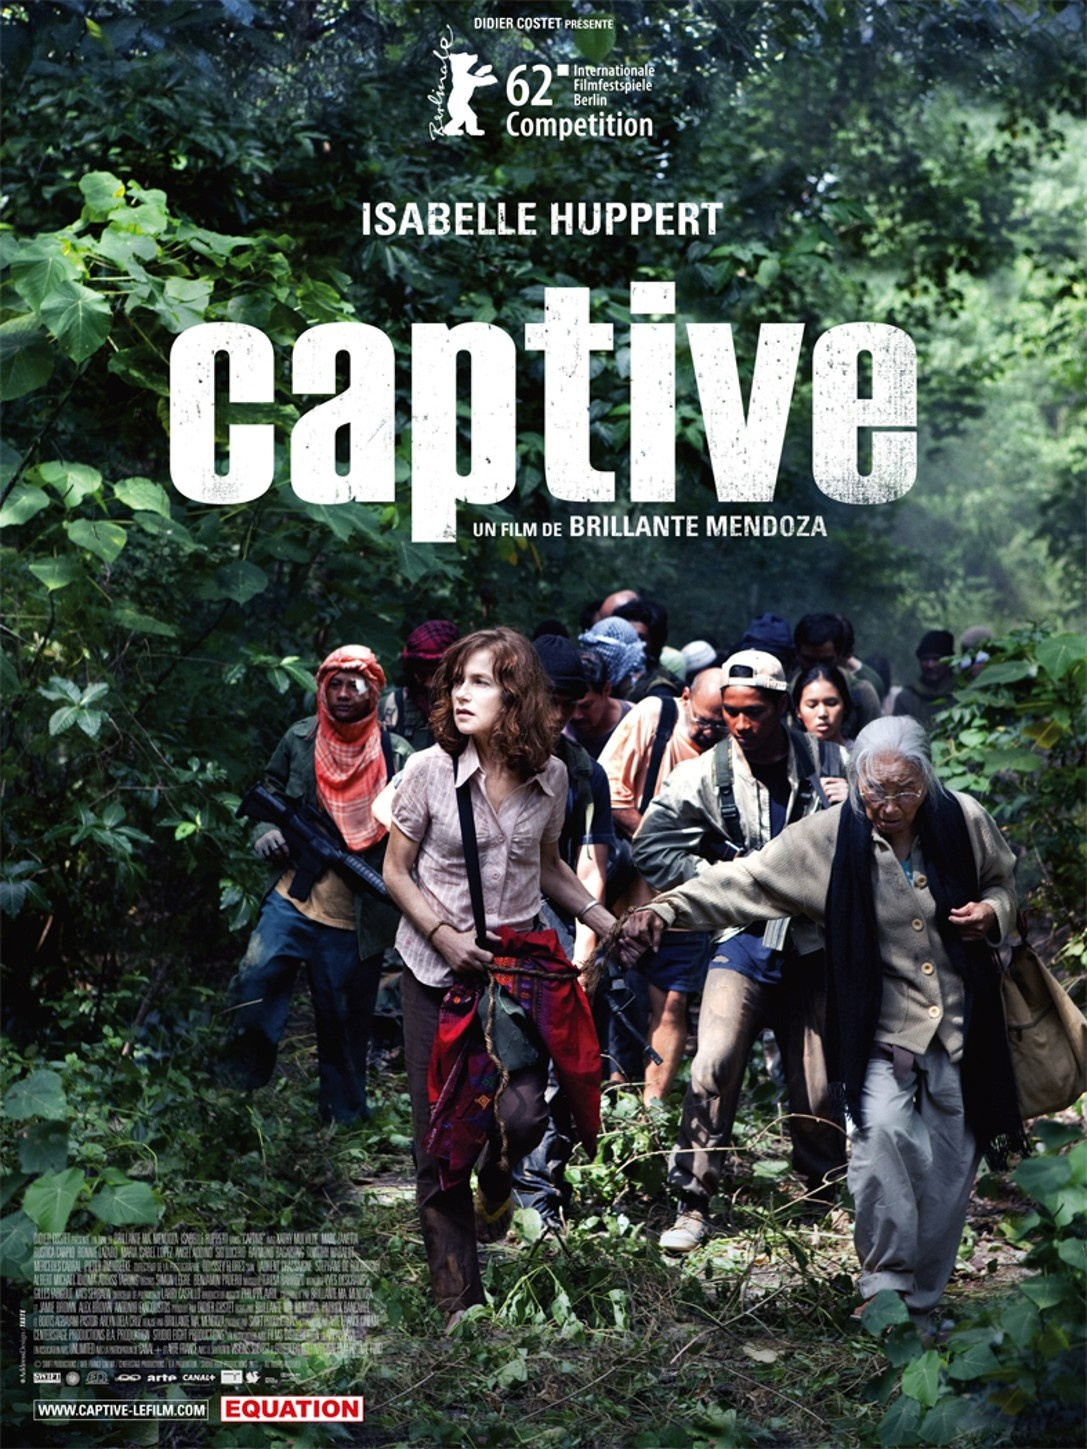 Caratula de Captive (Captured) (Cautiva)